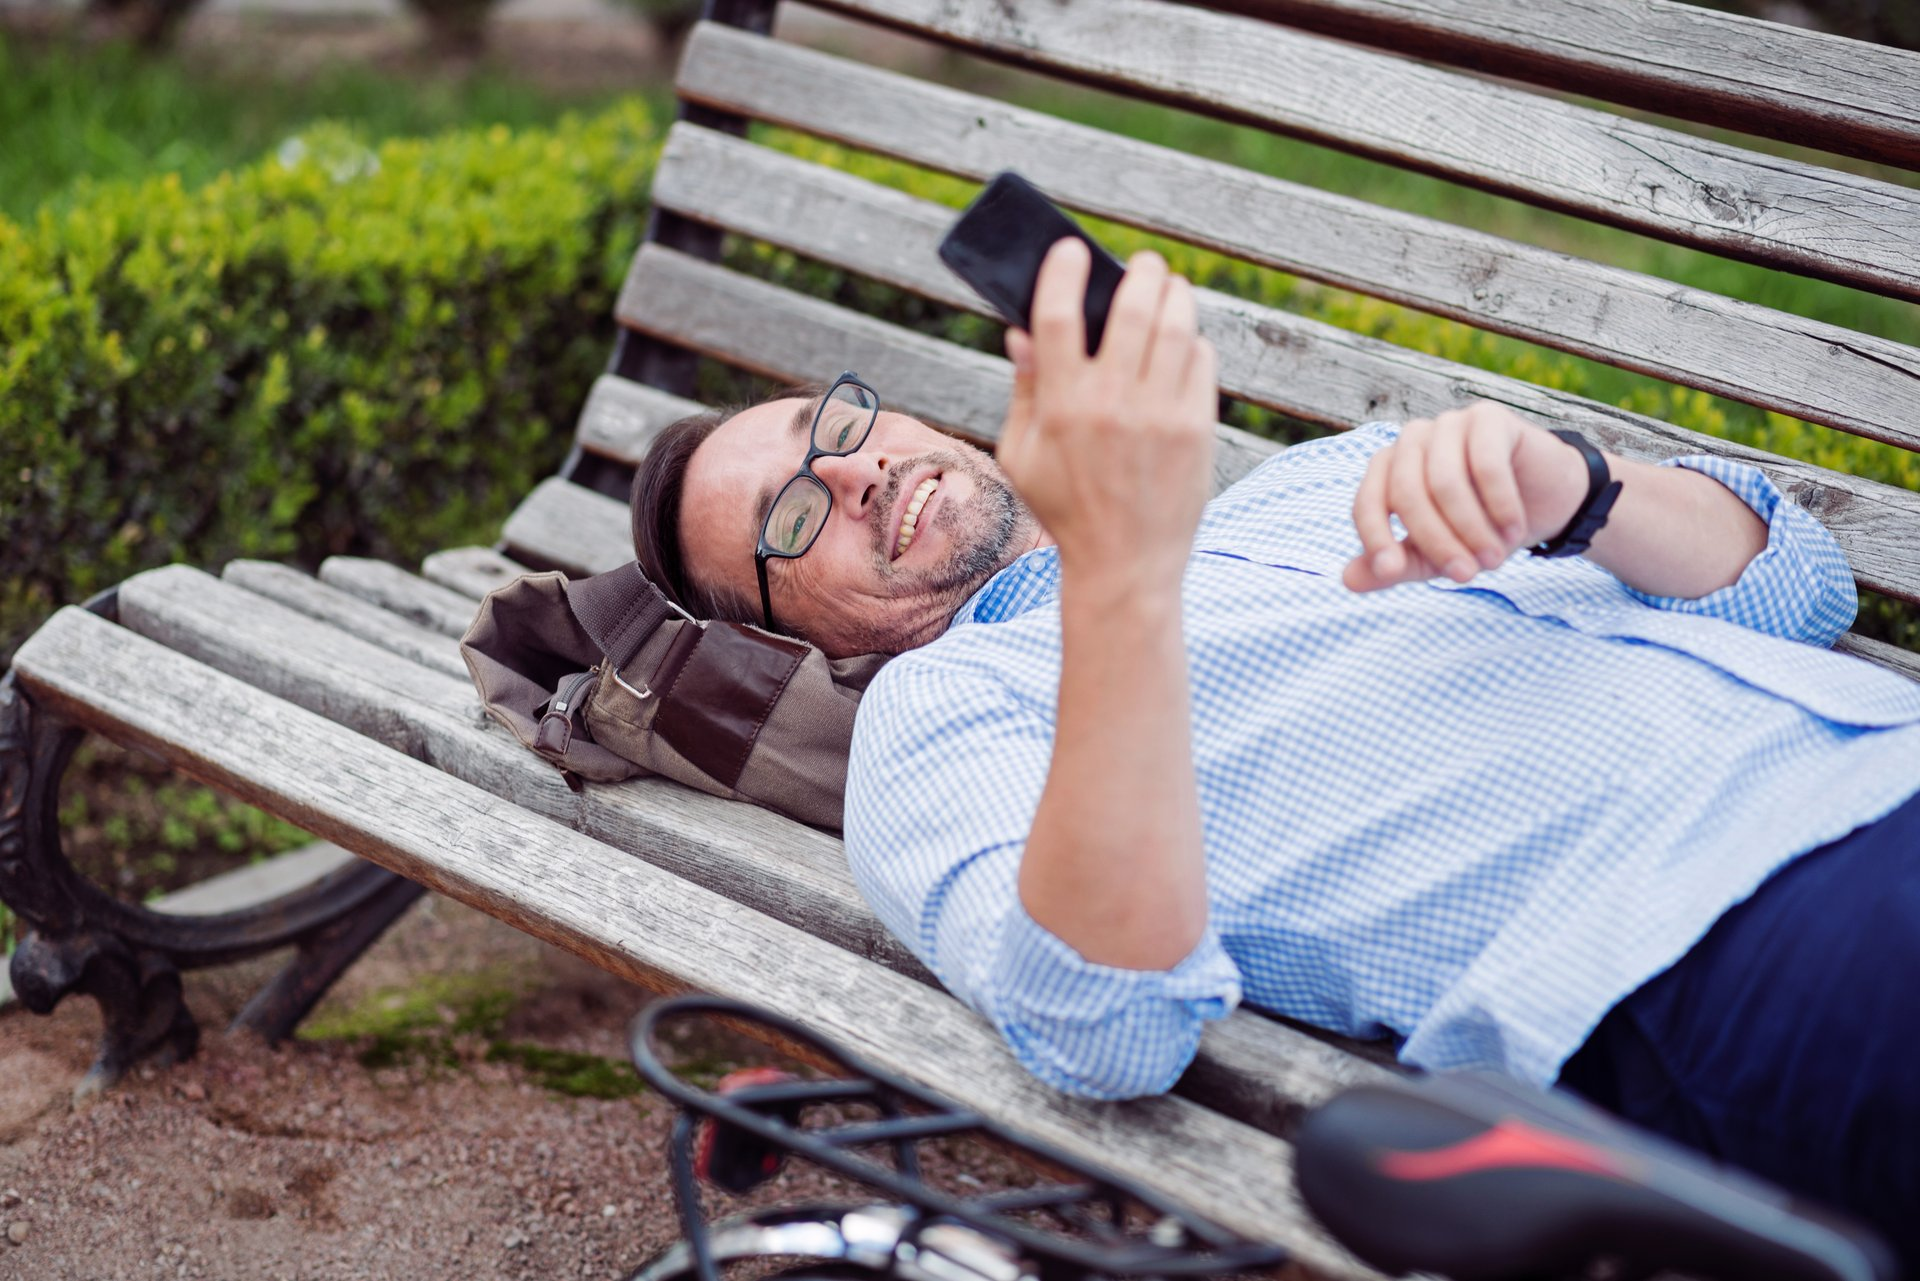 Man with cellphone on park bench